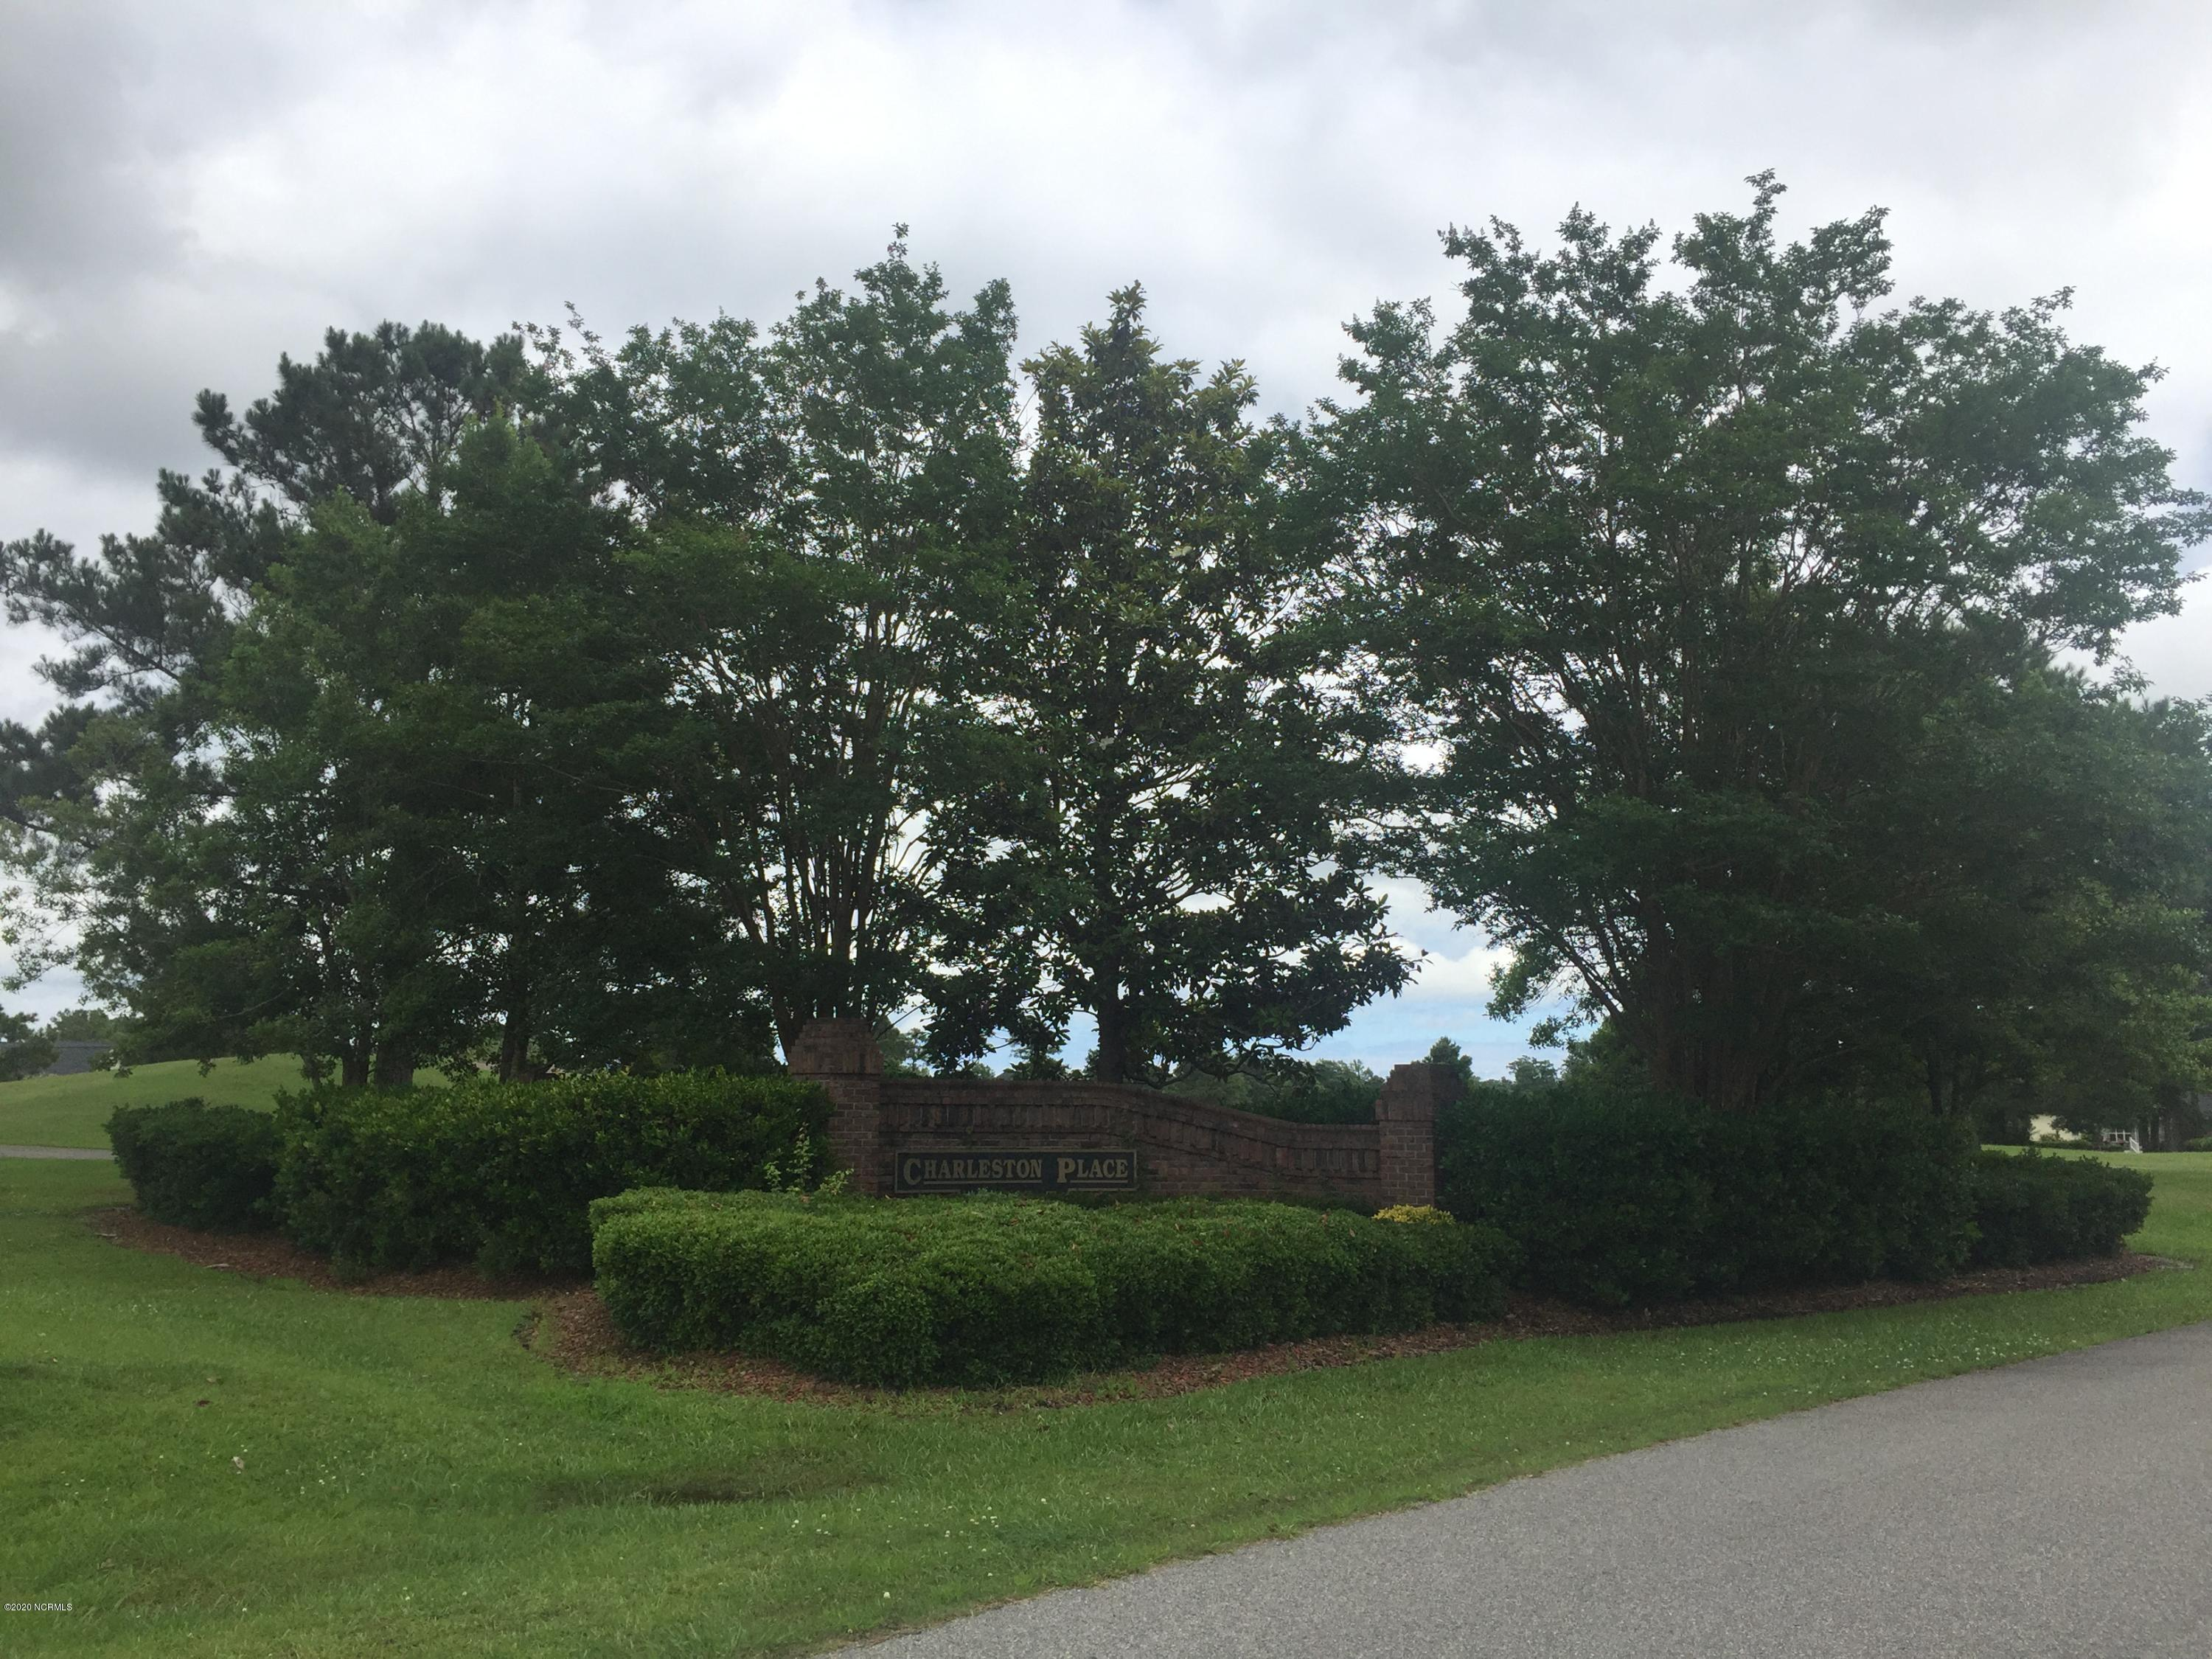 206 Monmouth Drive, Calabash, North Carolina 28467, ,Residential land,For sale,Monmouth,100222684